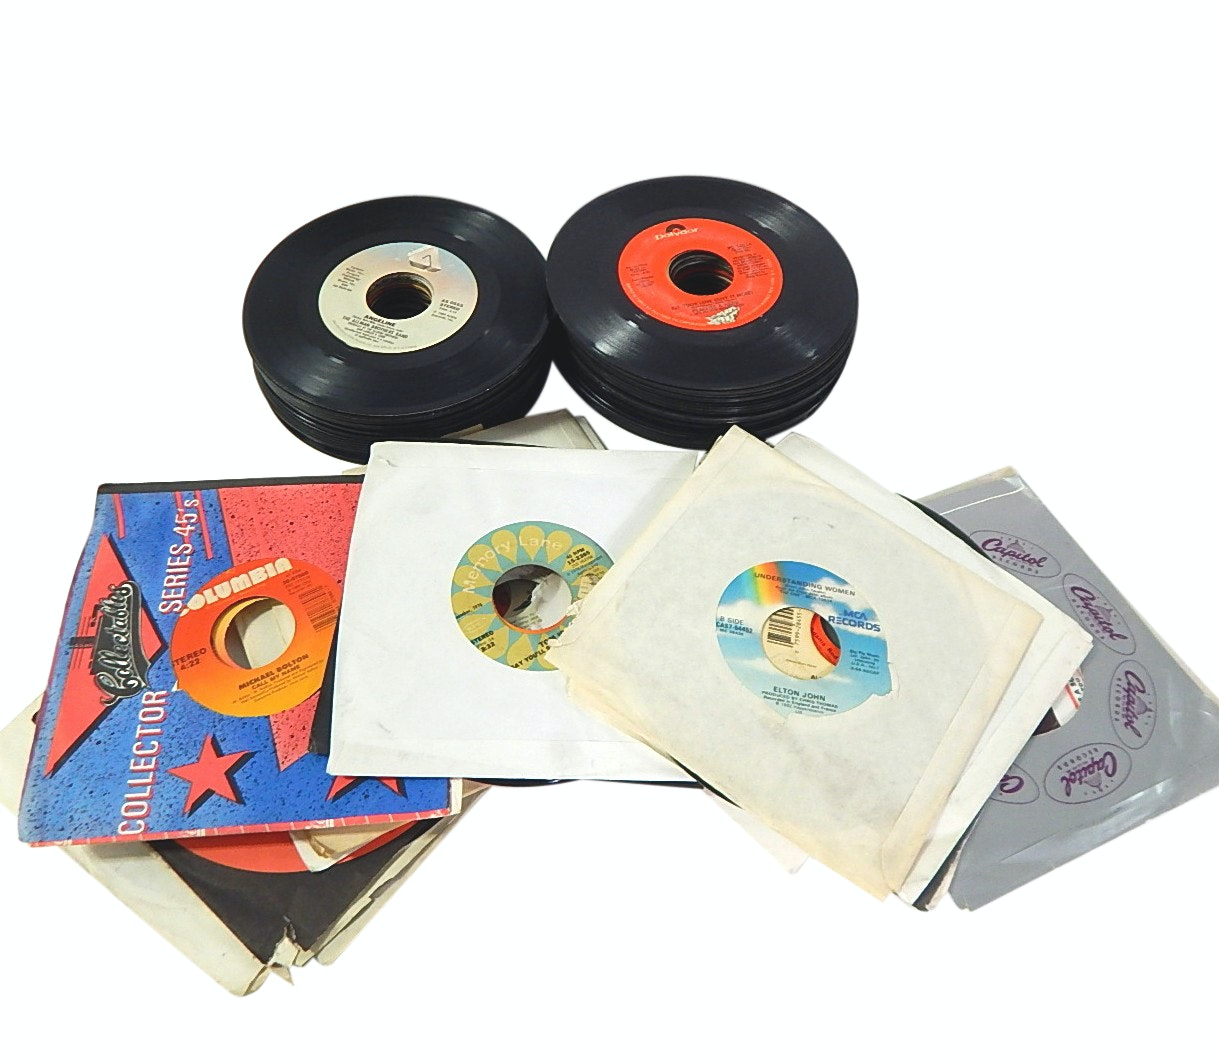 Over 80 Vintage 45 RPM Record Albums with Rock, Country, Pop